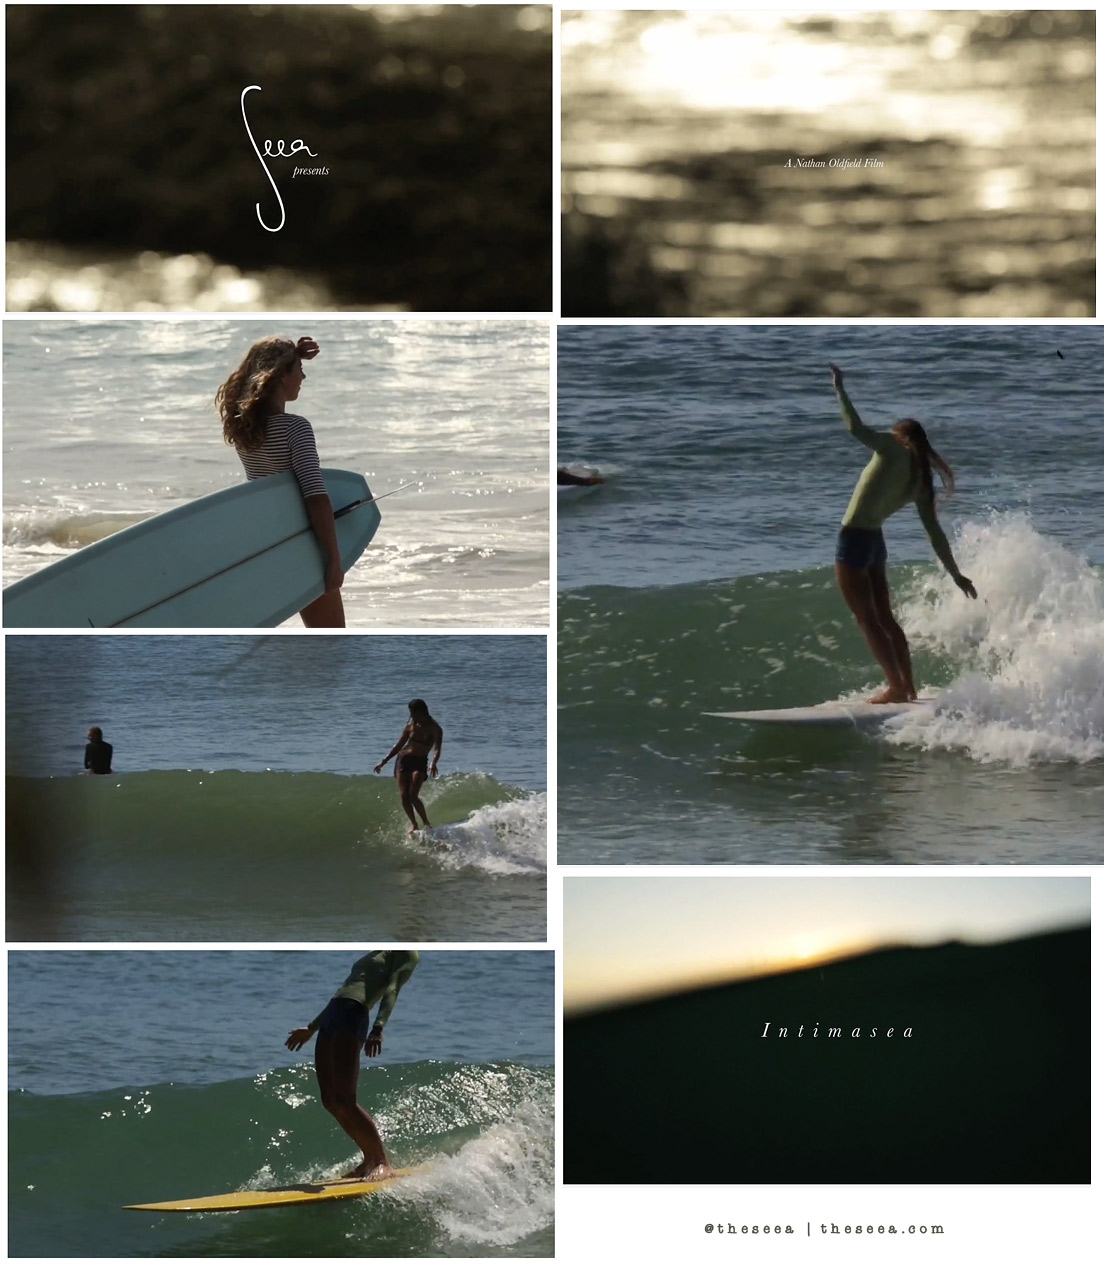 Frame grabs from Intimasea, a short surf film by Nathan Oldfield for Seea